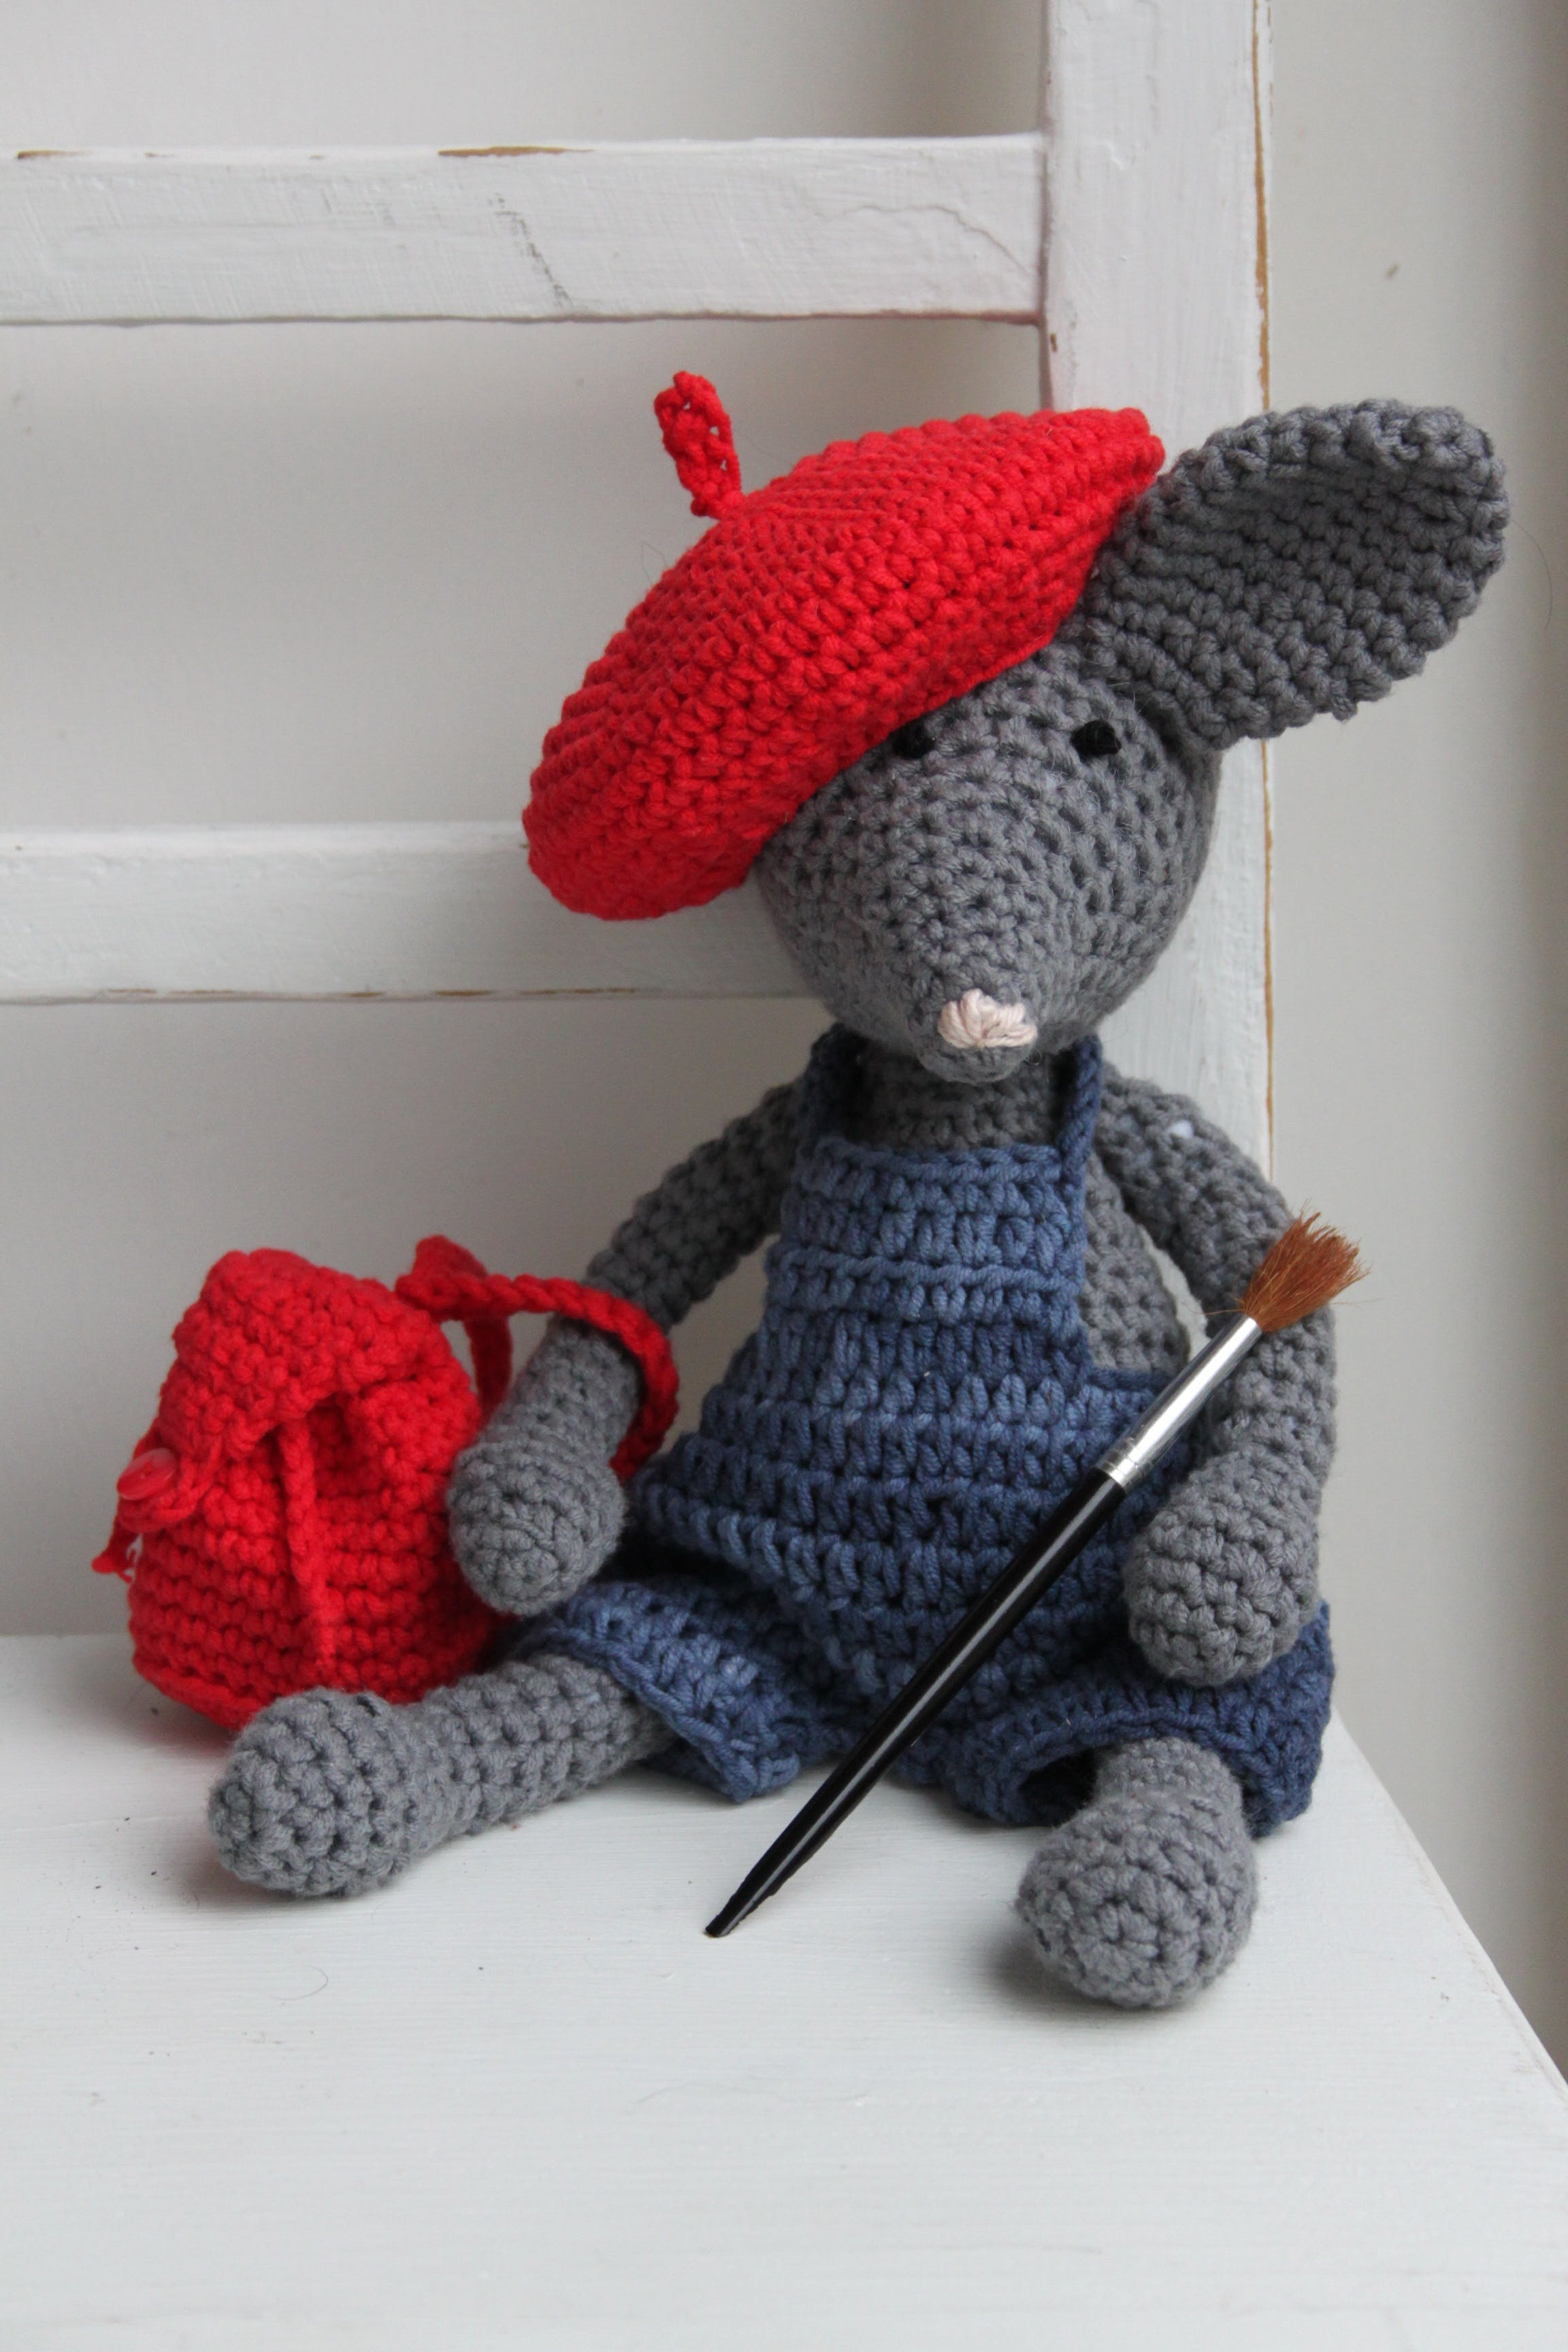 Gray Crochet Mouse With Red Backpack Plush Toy on White Surface